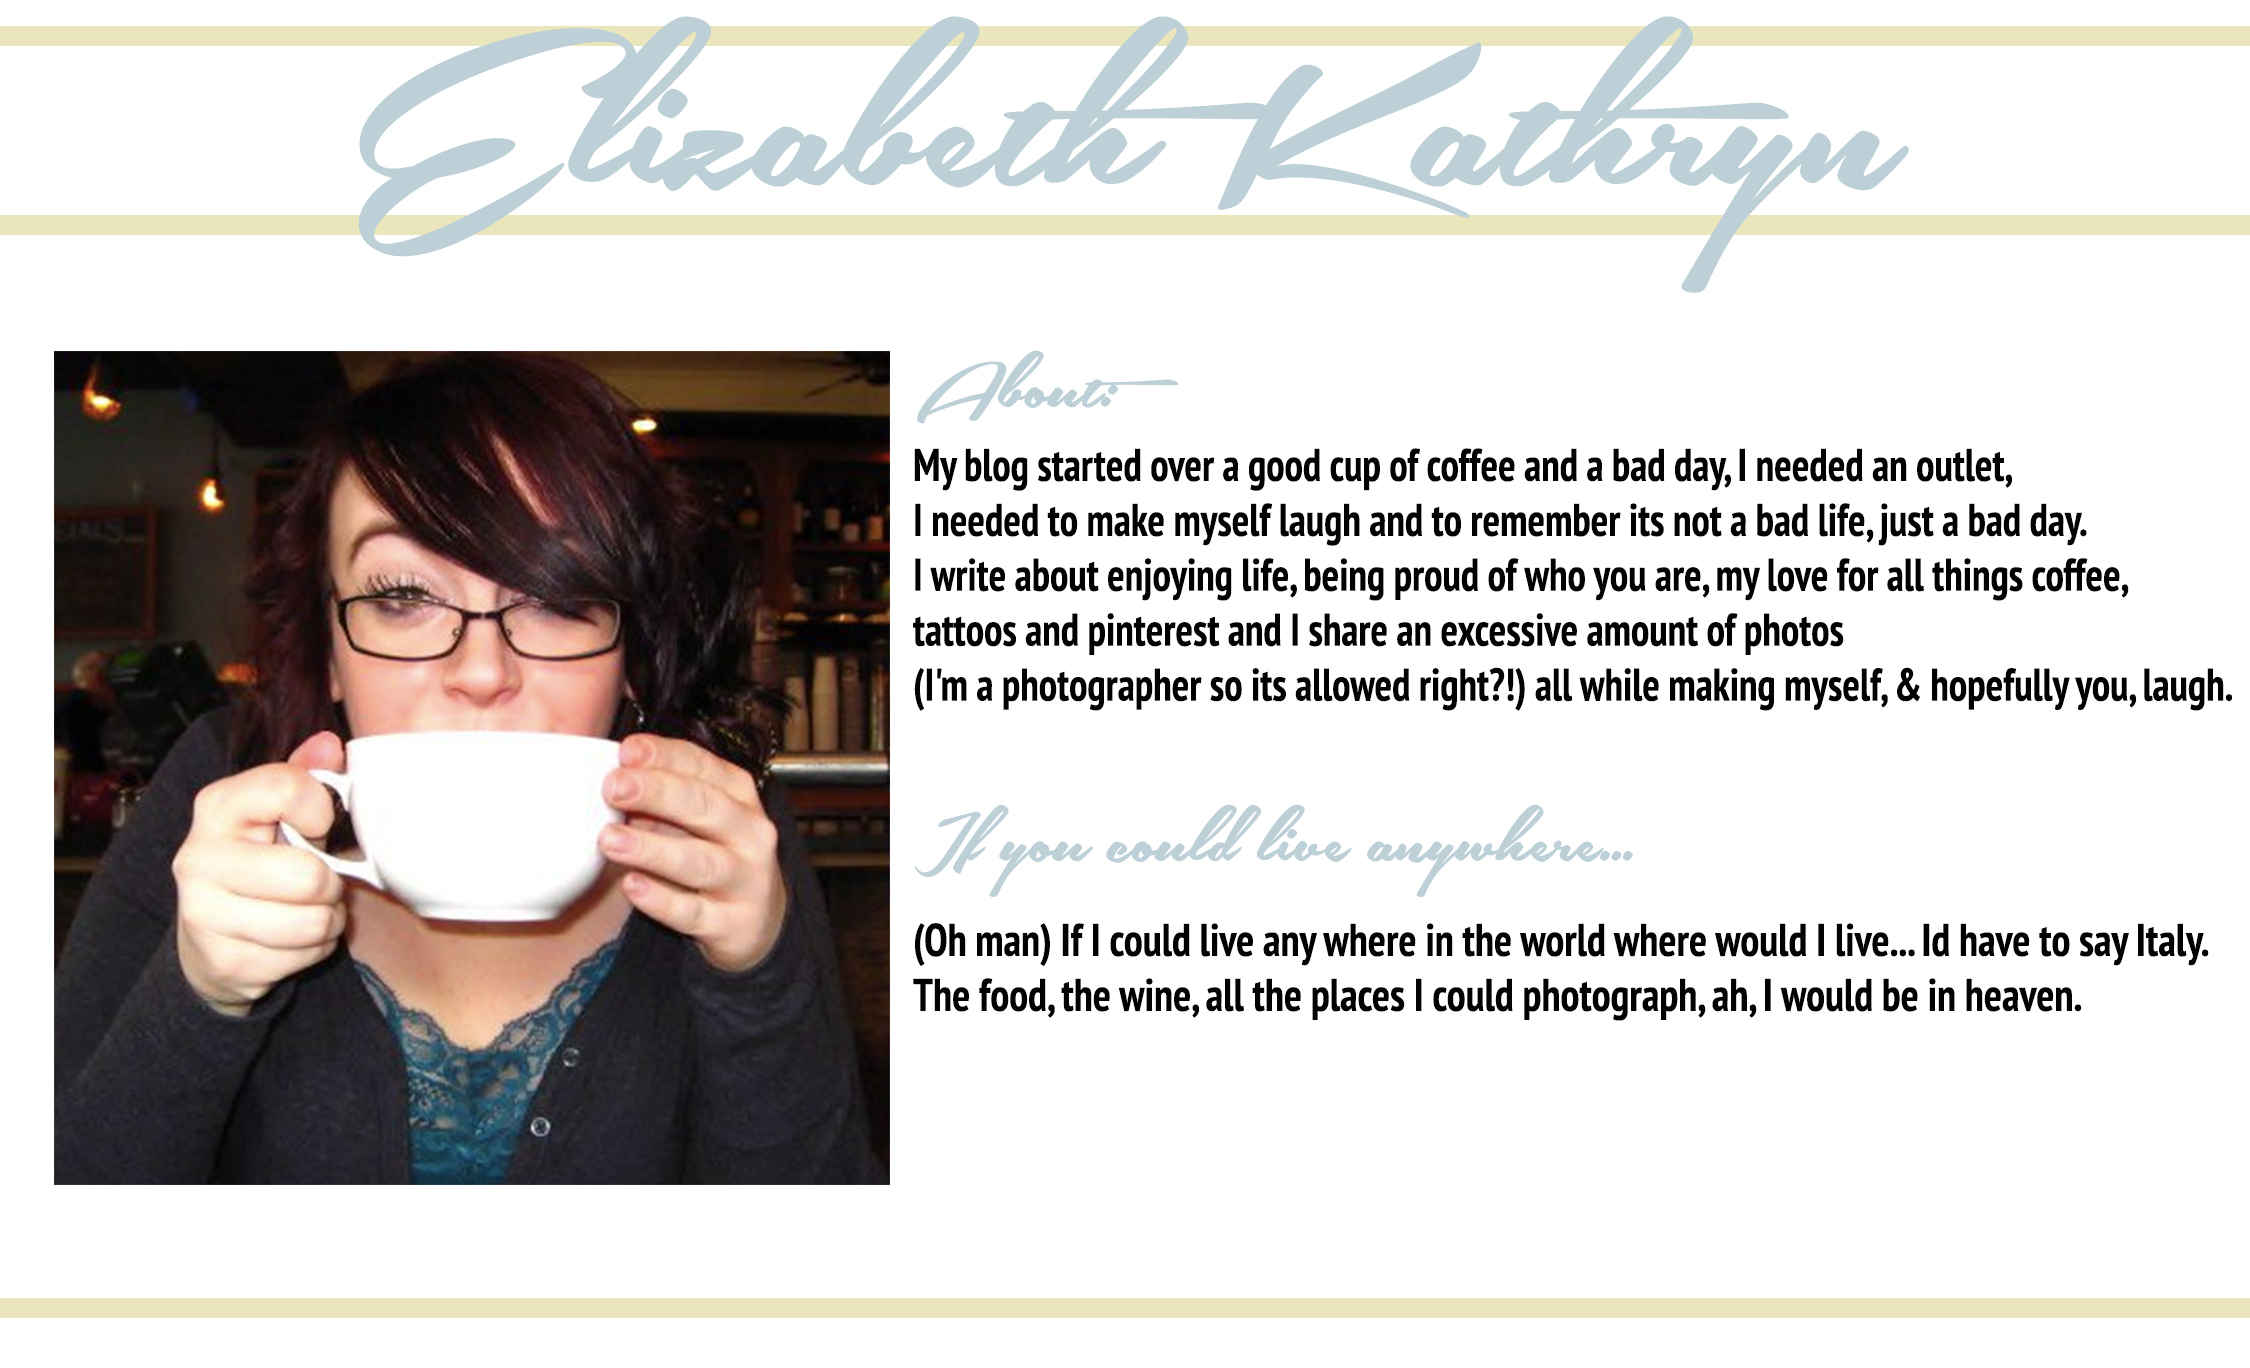 Follow Elizabeth Kathryn: Her Blog ♥ Twitter ♥ Pinterest